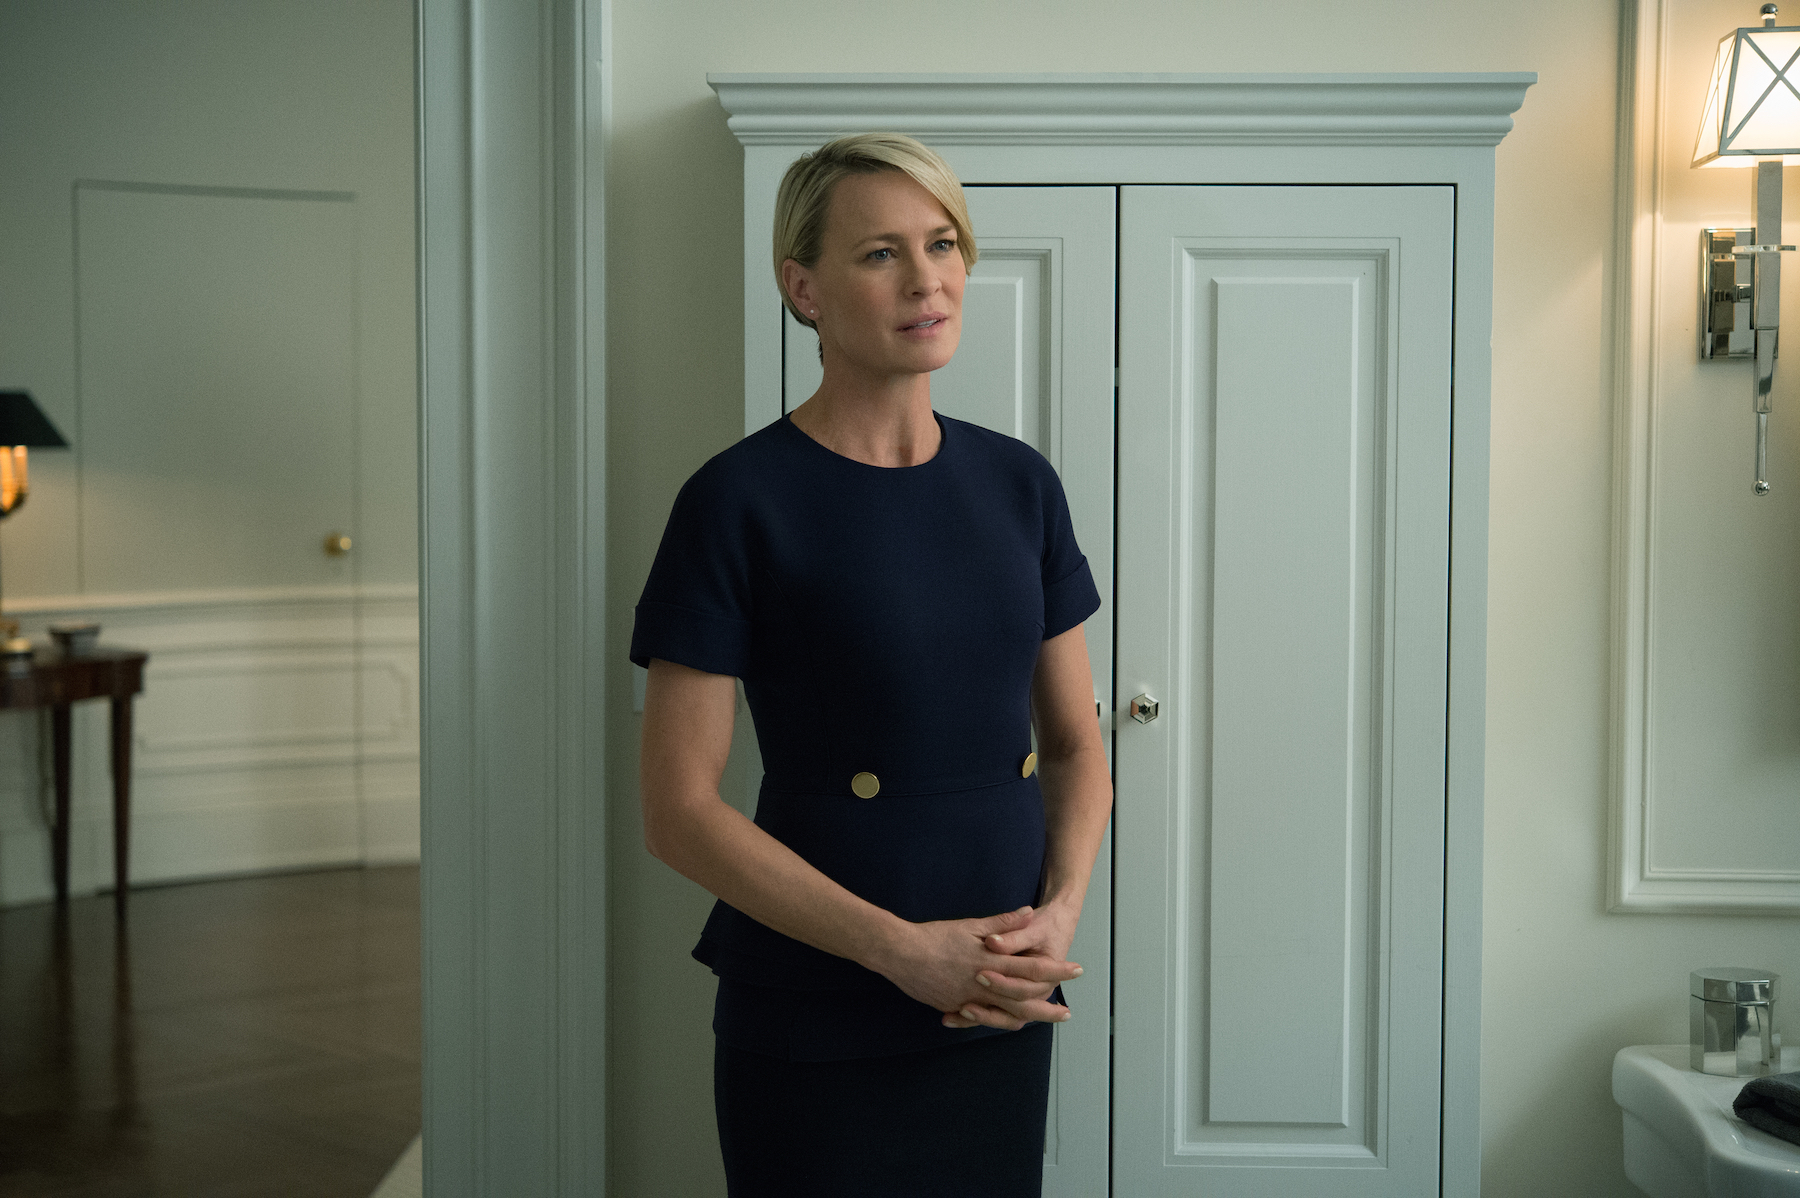 Mixed feelings about the fact I want to be Claire Underwood